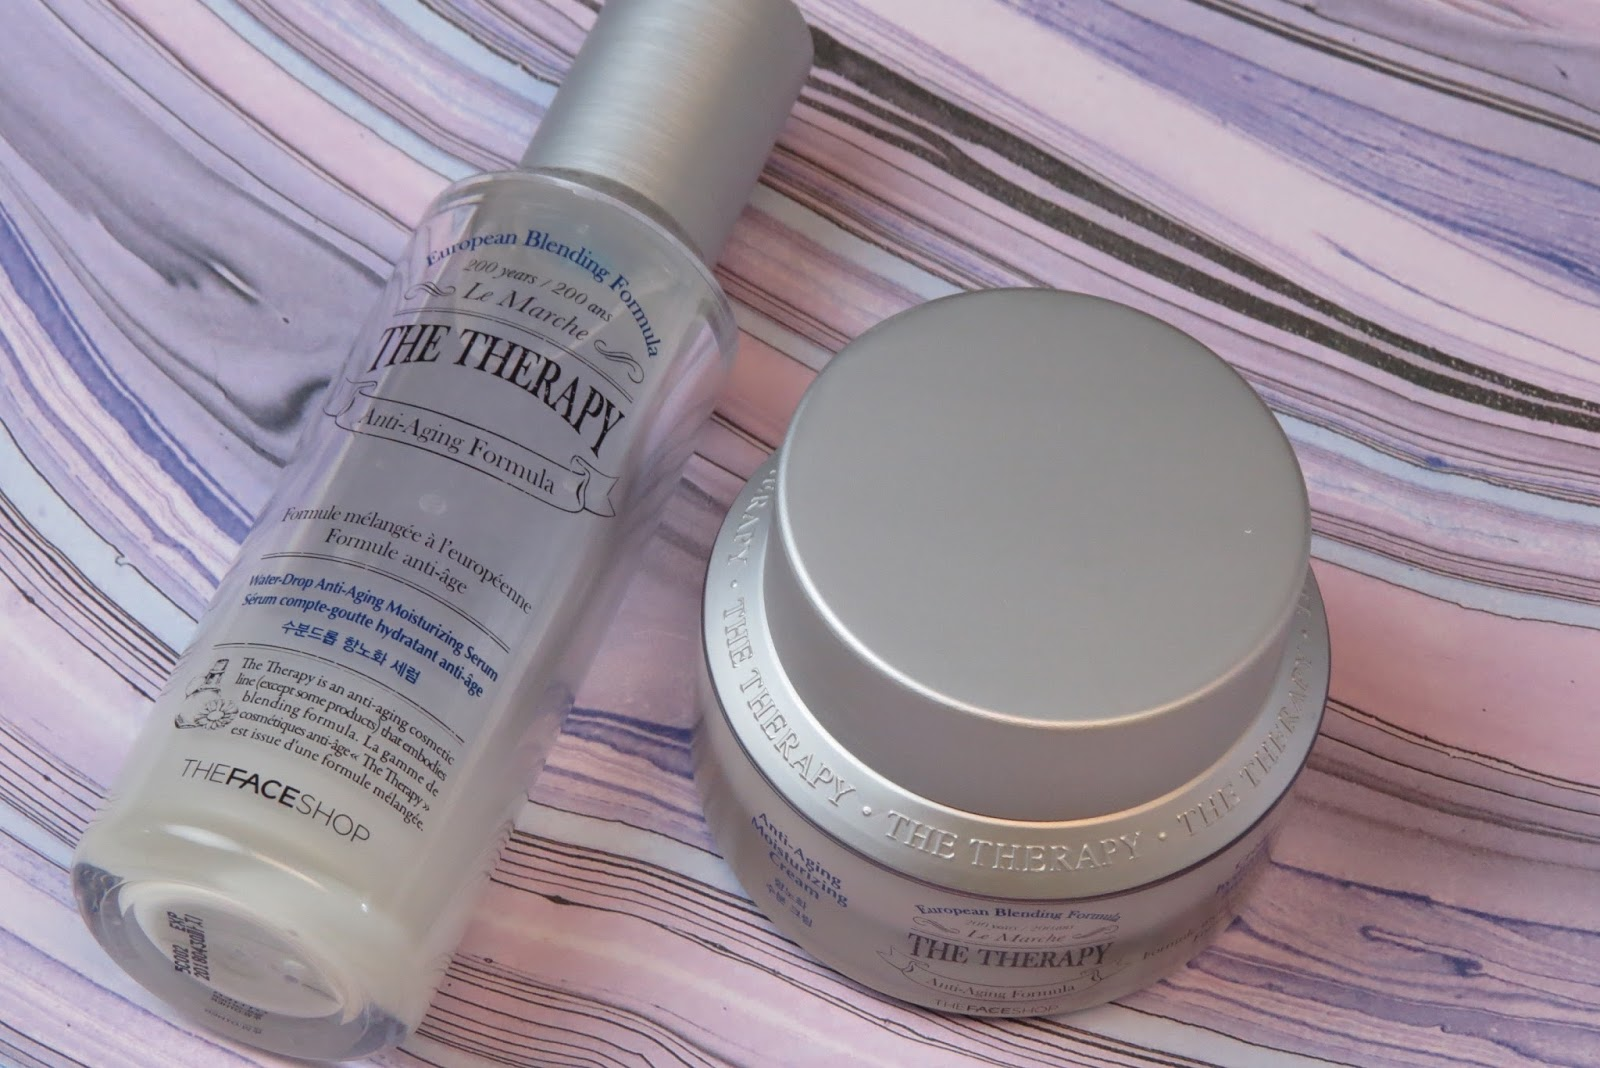 Review: THEFACESHOP The Therapy Skincare